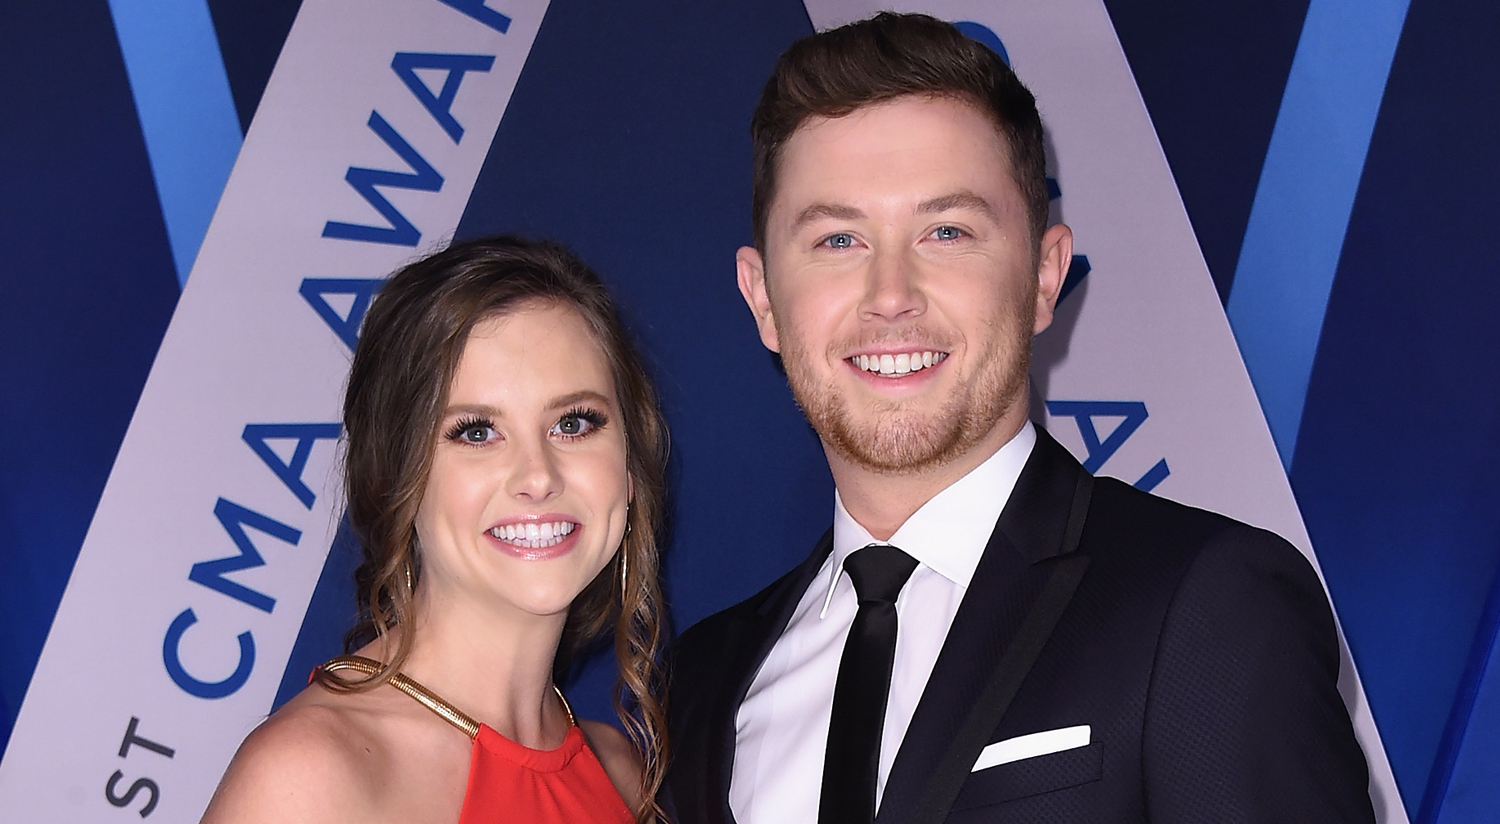 Scotty mccreery dating lauren alaina 2019 olympics